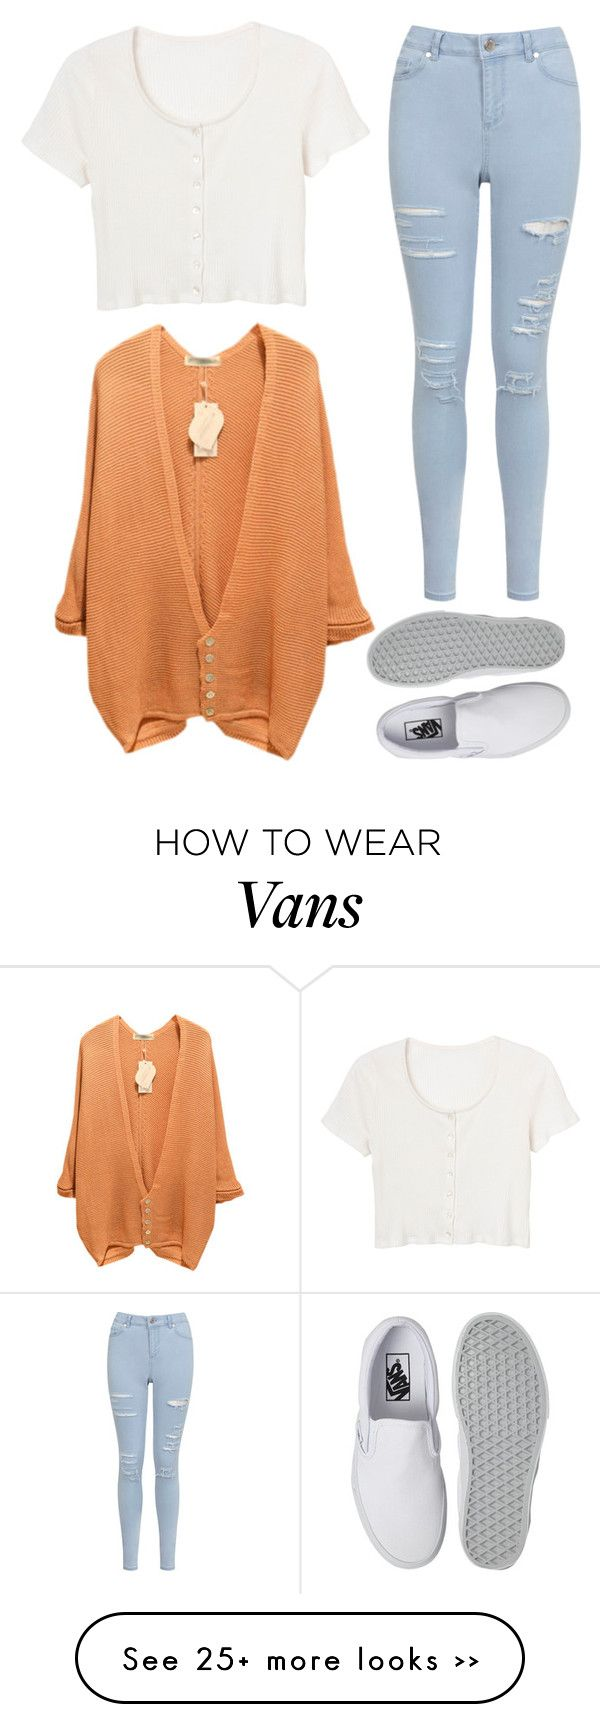 """""""untitled #72"""" by clothesaremythang on Polyvore"""